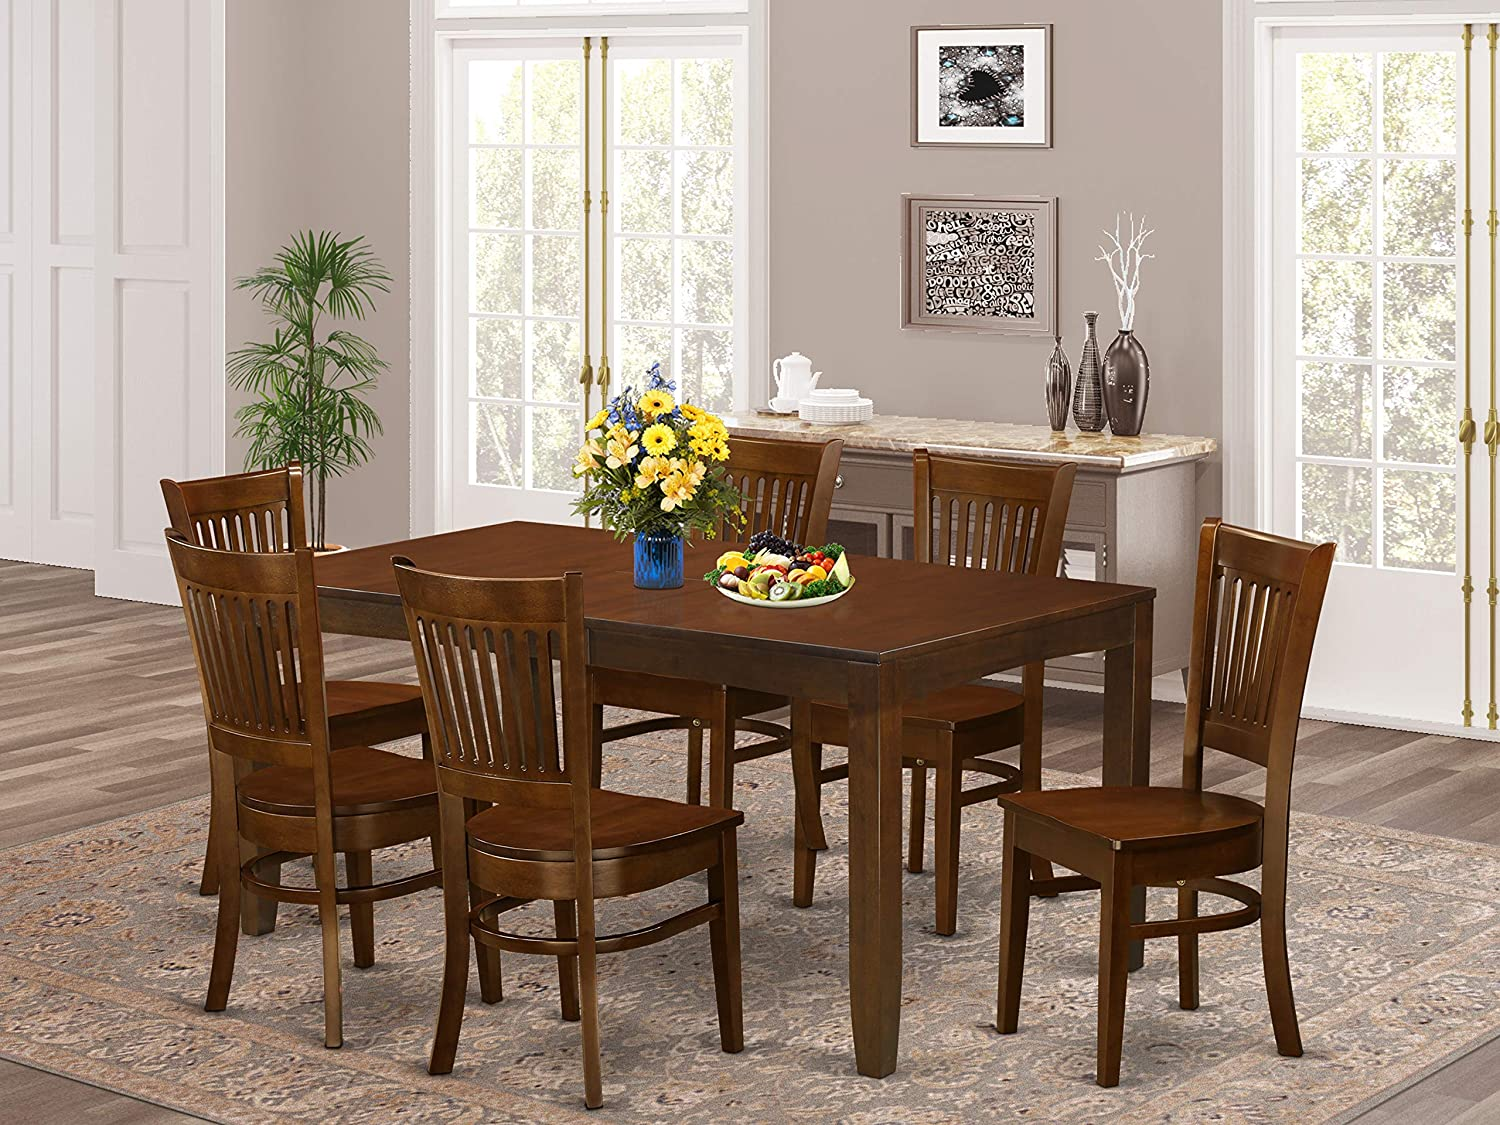 12 Leaf And 6 Wood Chairs In Espresso, 12 Seat Dining Room Table Sets